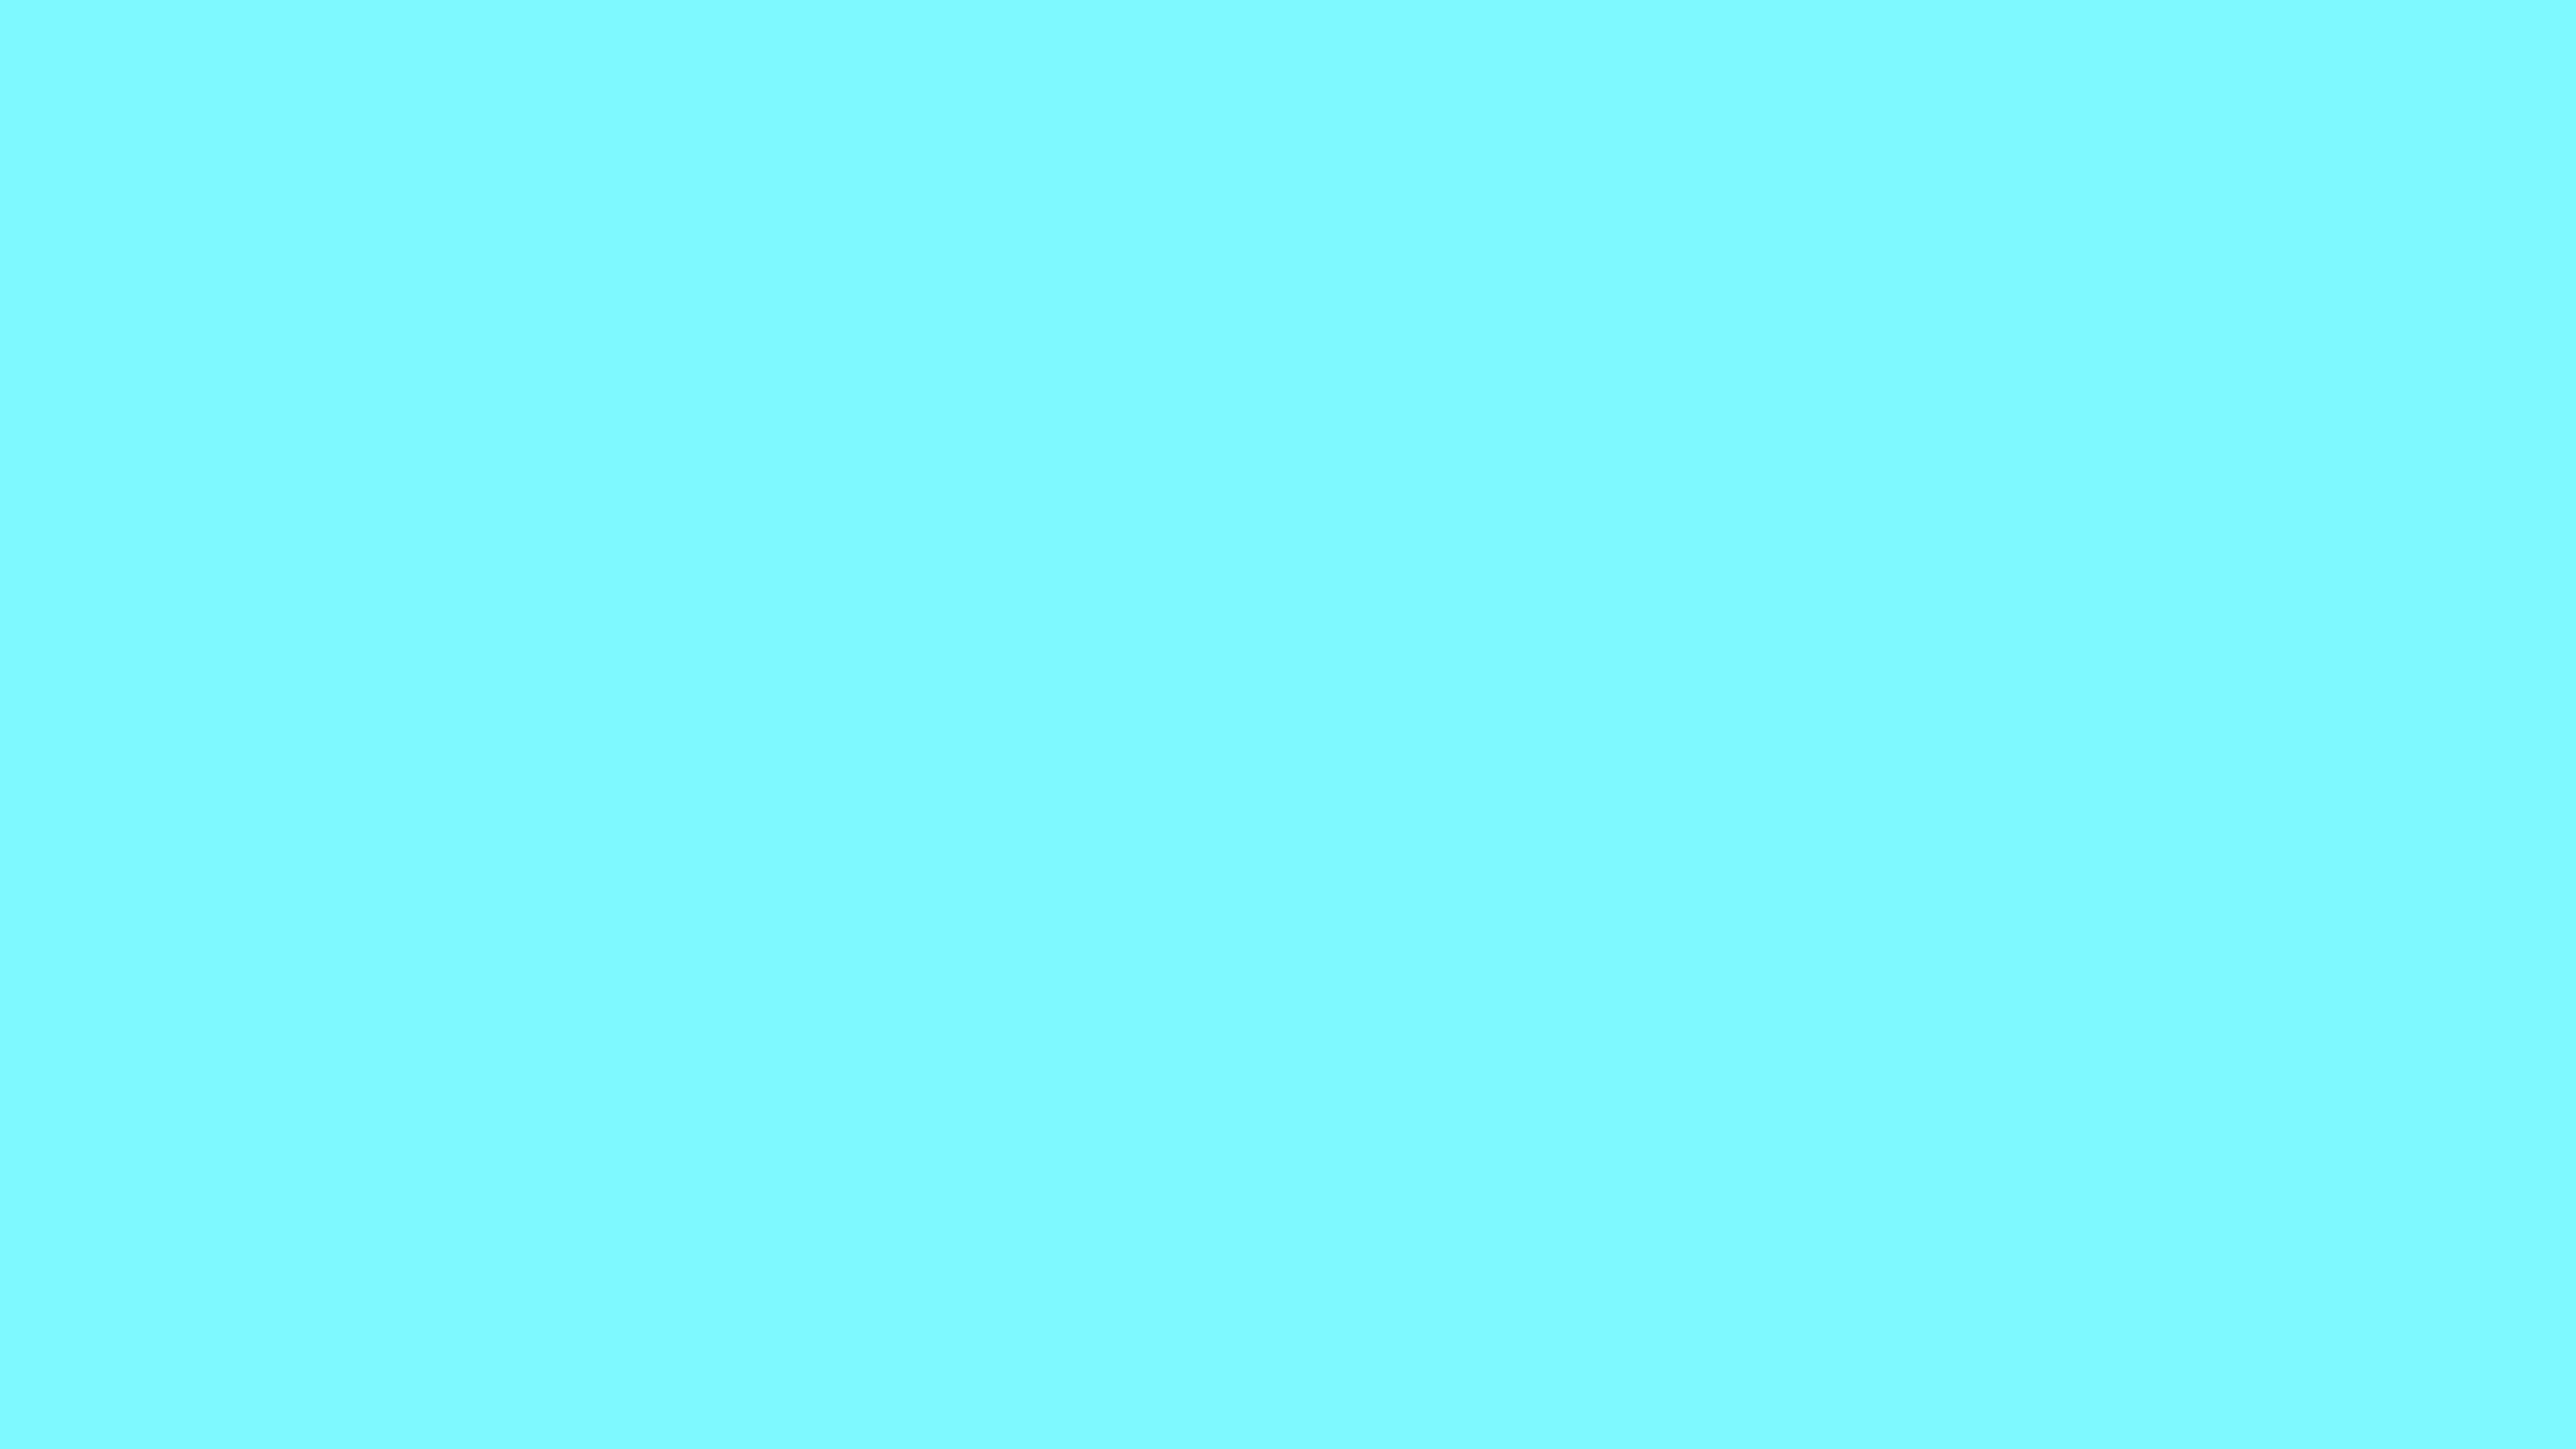 4096x2304 Electric Blue Solid Color Background